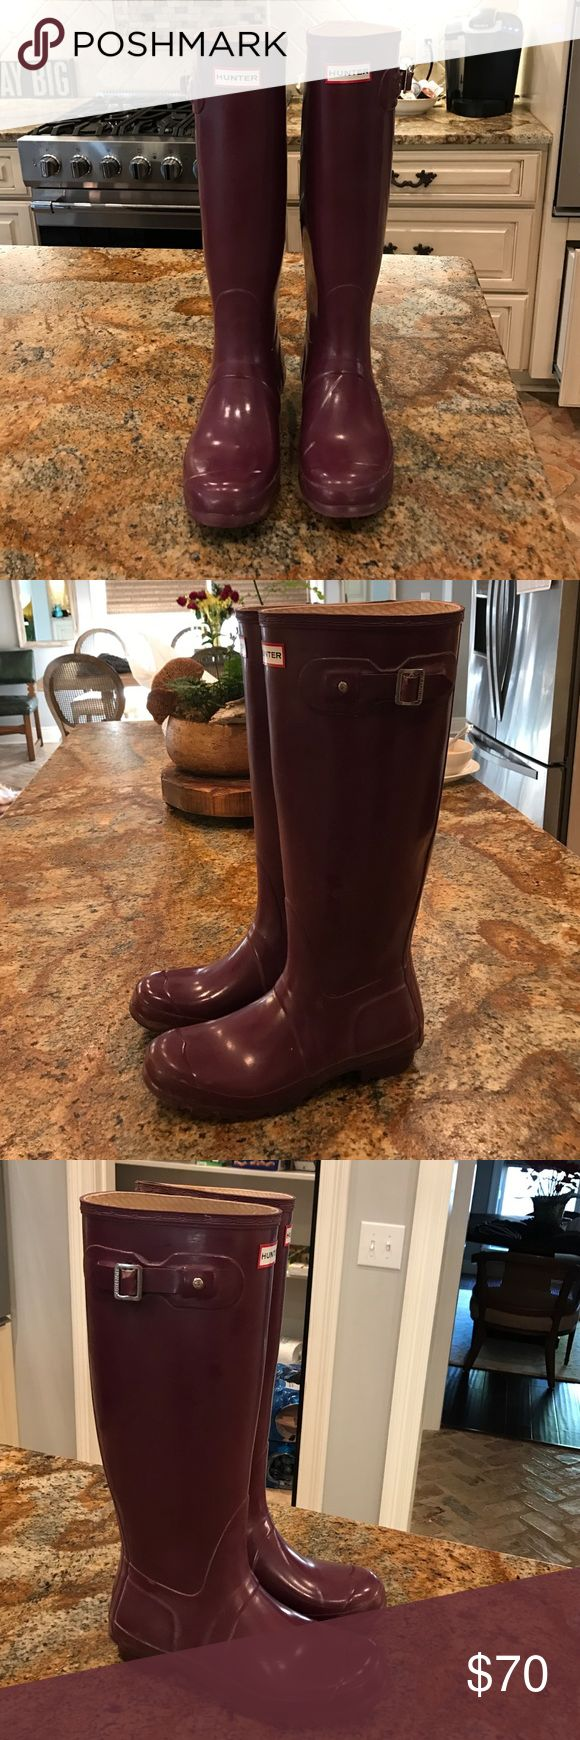 Tall hunter boots Maroon/purple, slightly worn, just below the knee height! 100% water and mud resistant, original gloss finish Hunter Boots Shoes Winter & Rain Boots